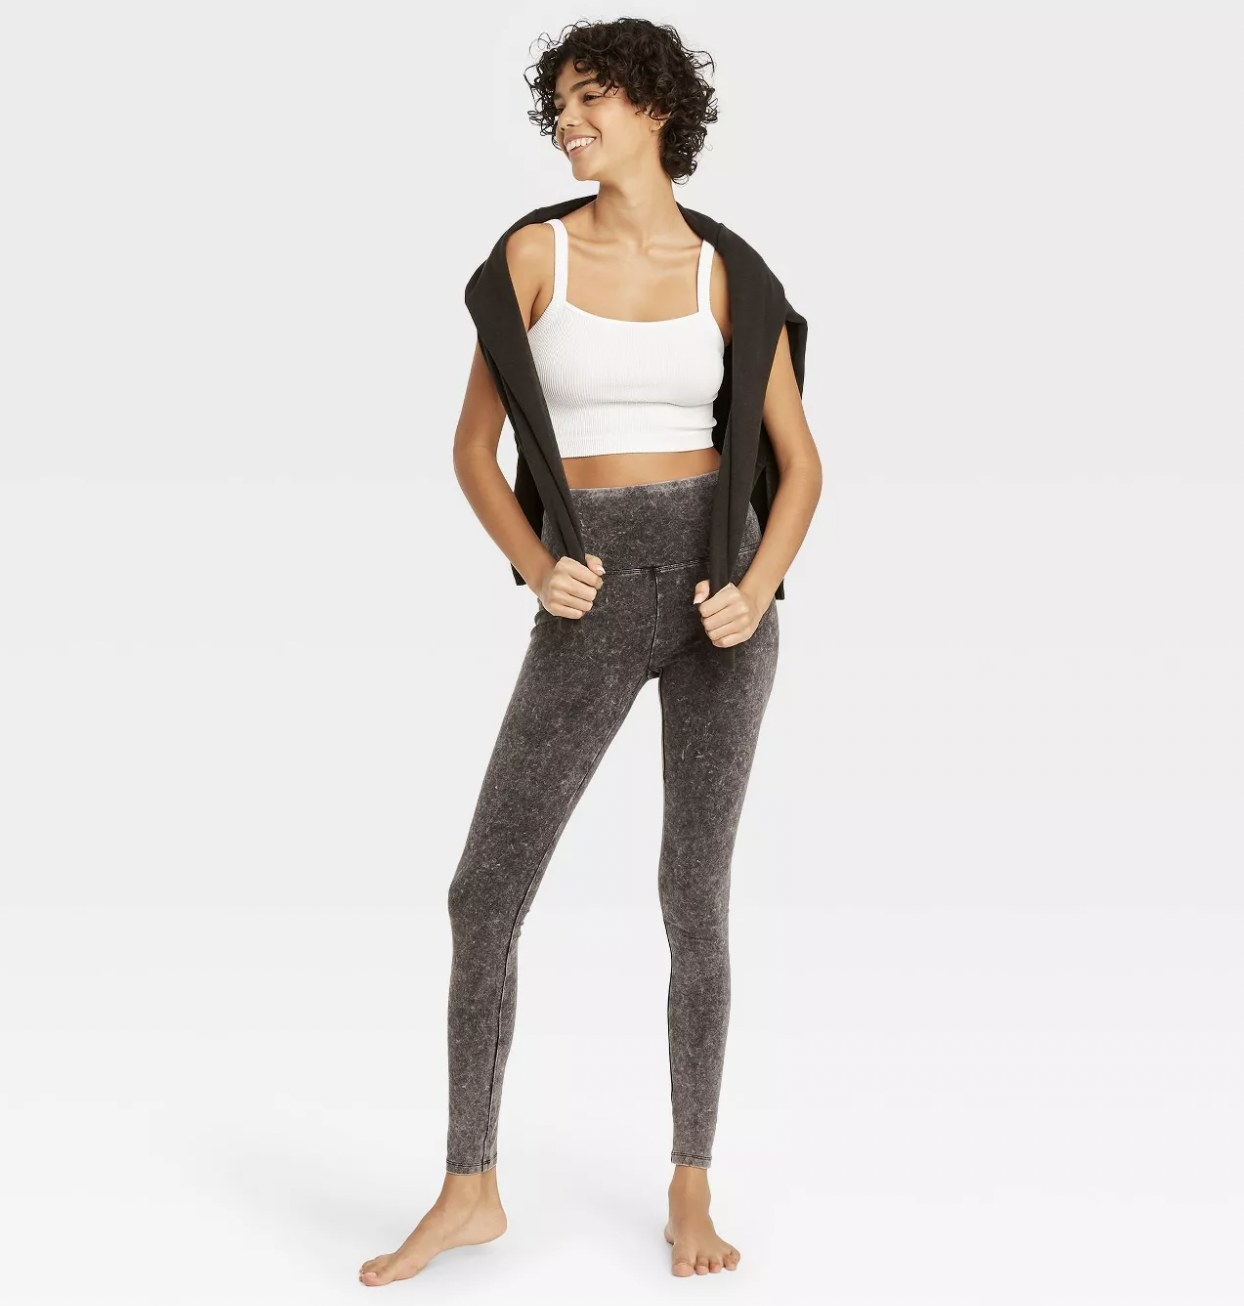 A model wearing black stonewashed leggings with a white tank top and black sweater